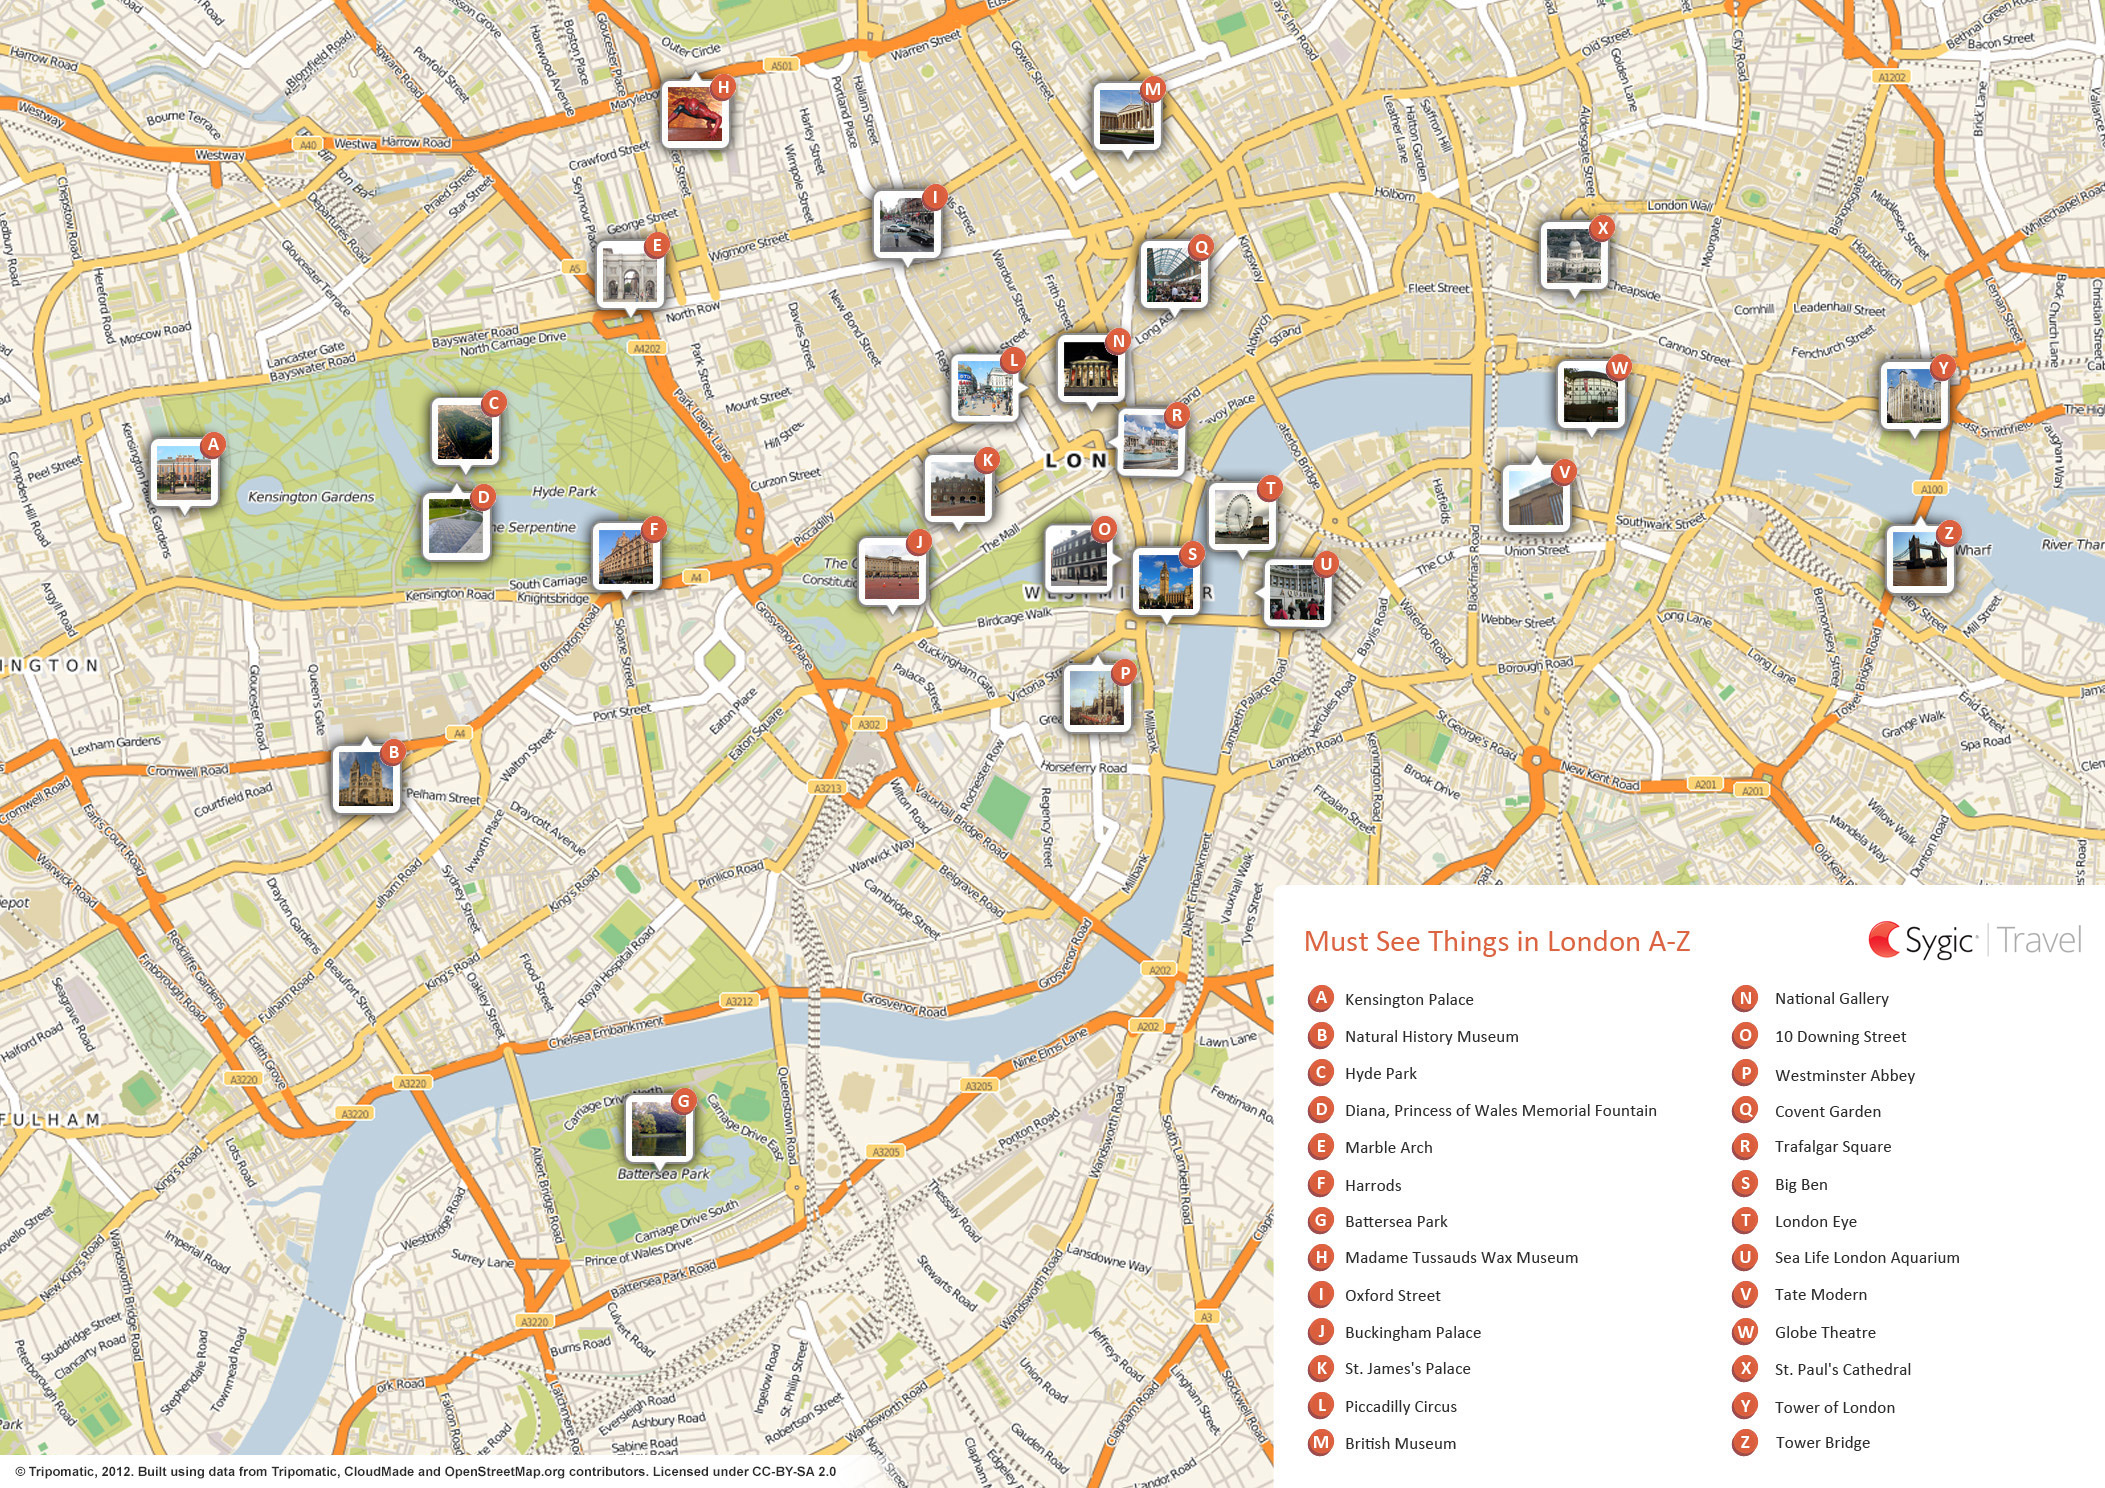 London Printable Tourist Map – London Map Of Tourist Attractions